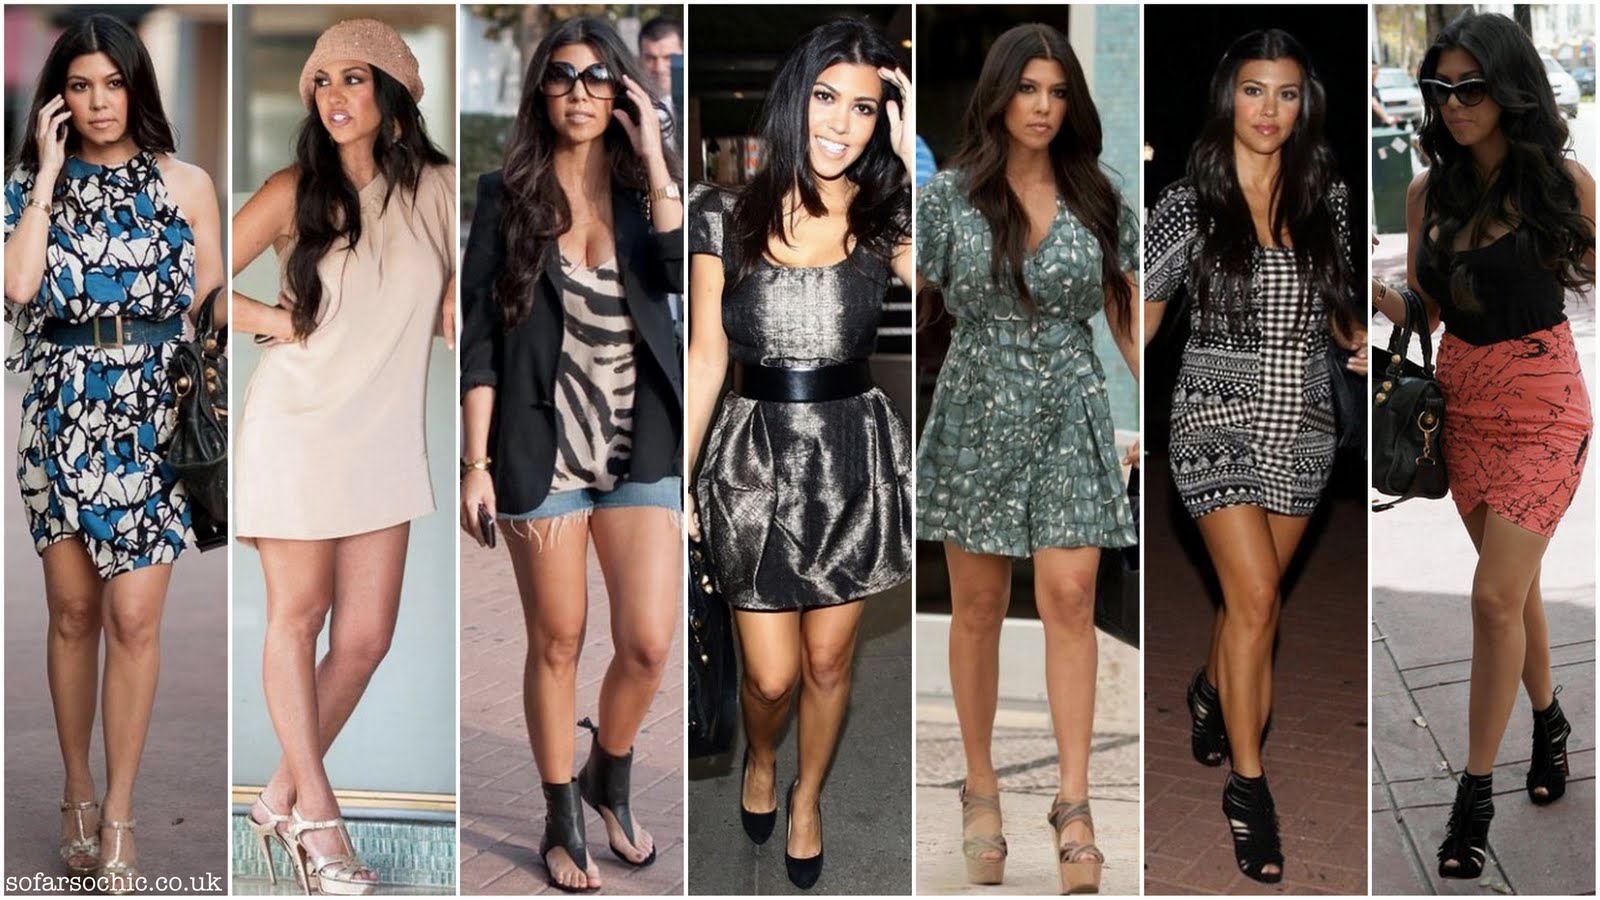 Kourtney & Khloe Are My Favorite Sisters, Because They Seem Like They